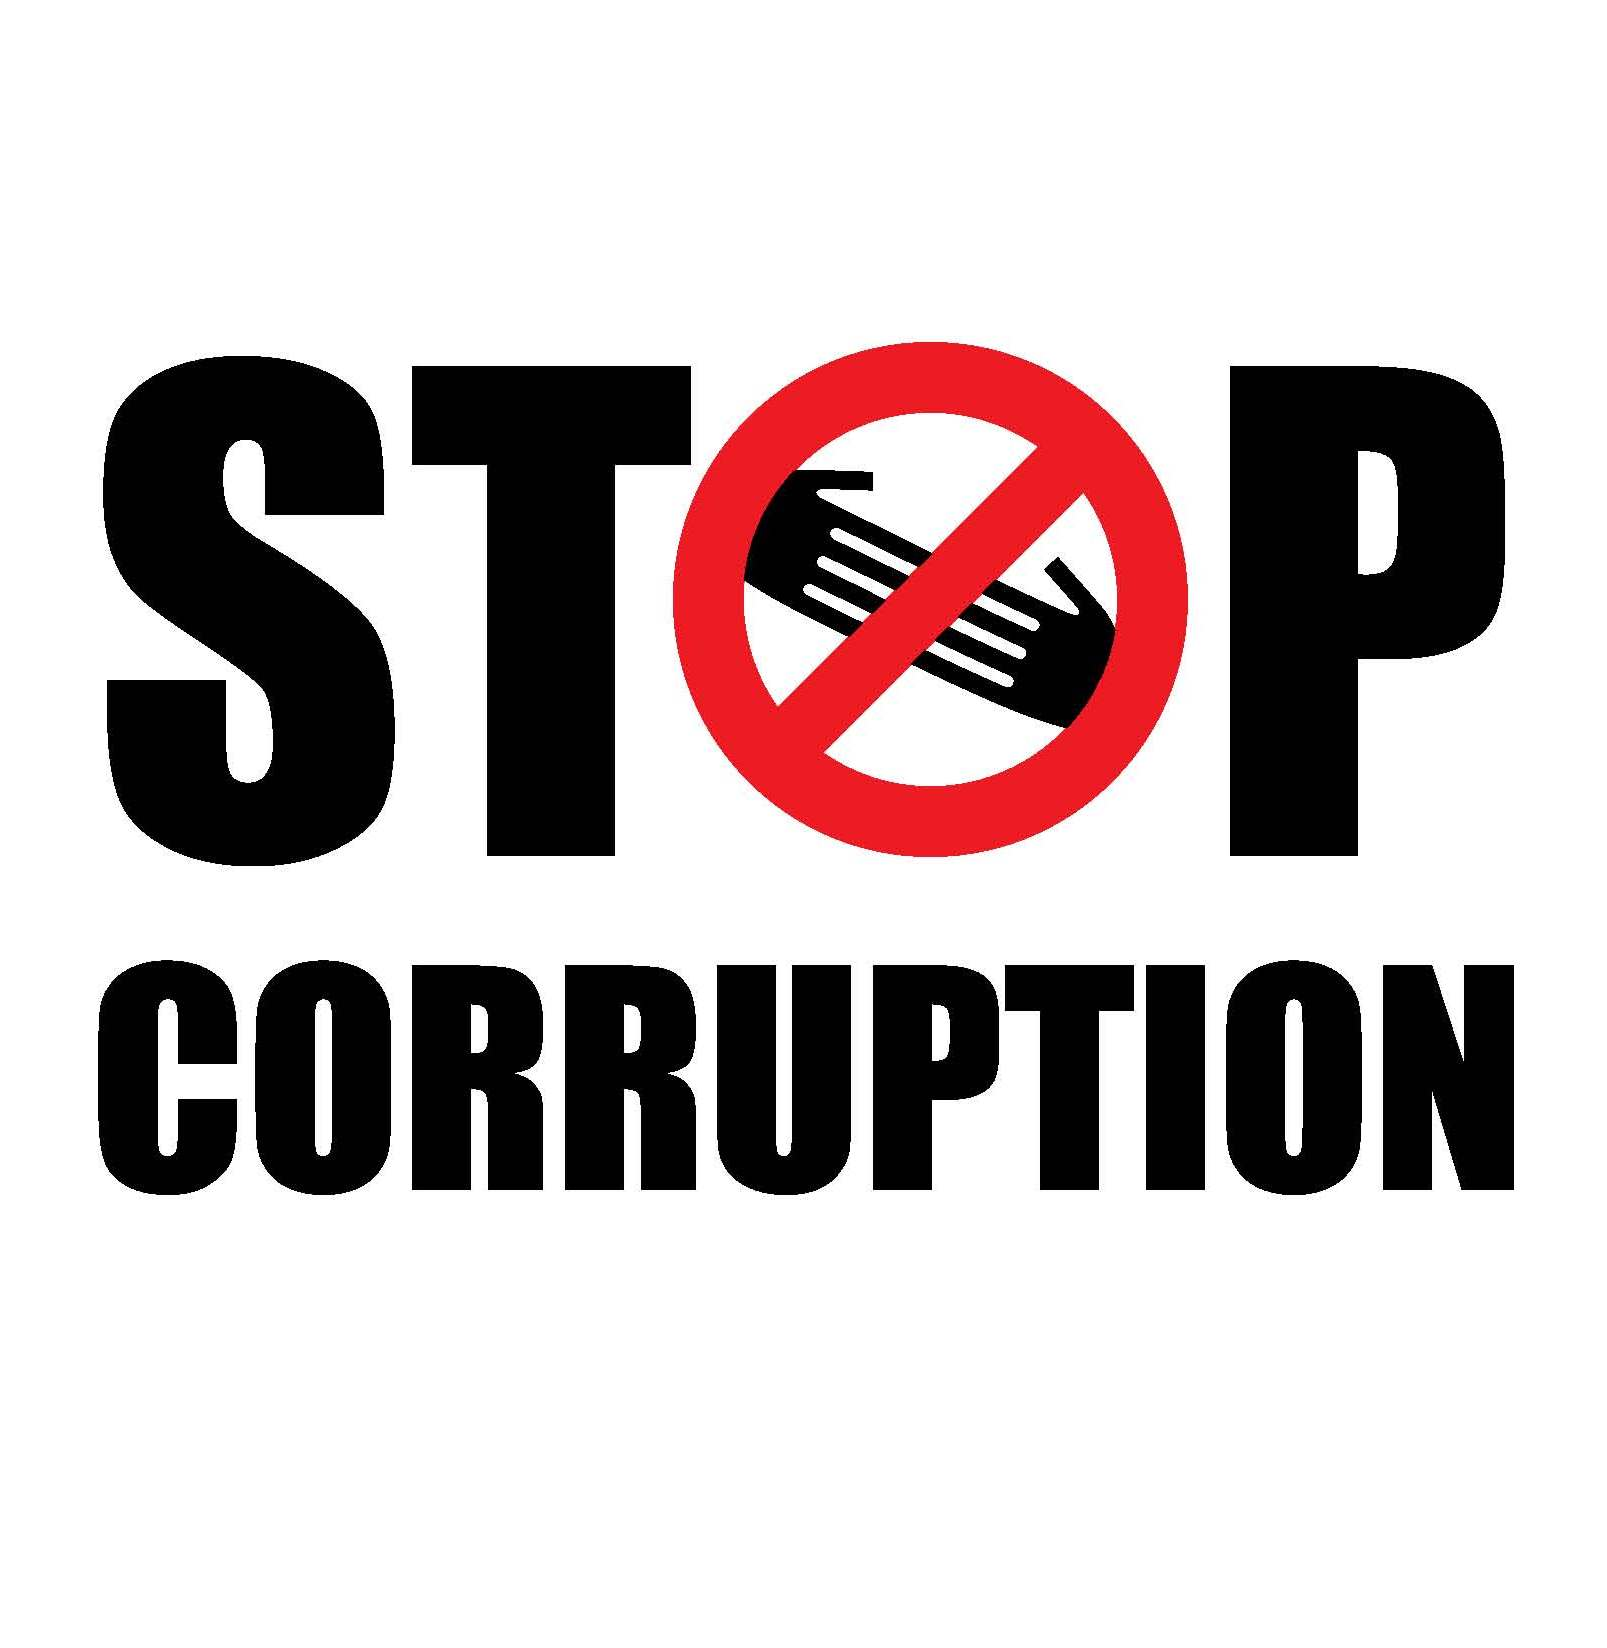 Hate corruption, it wastes taxes paid for development